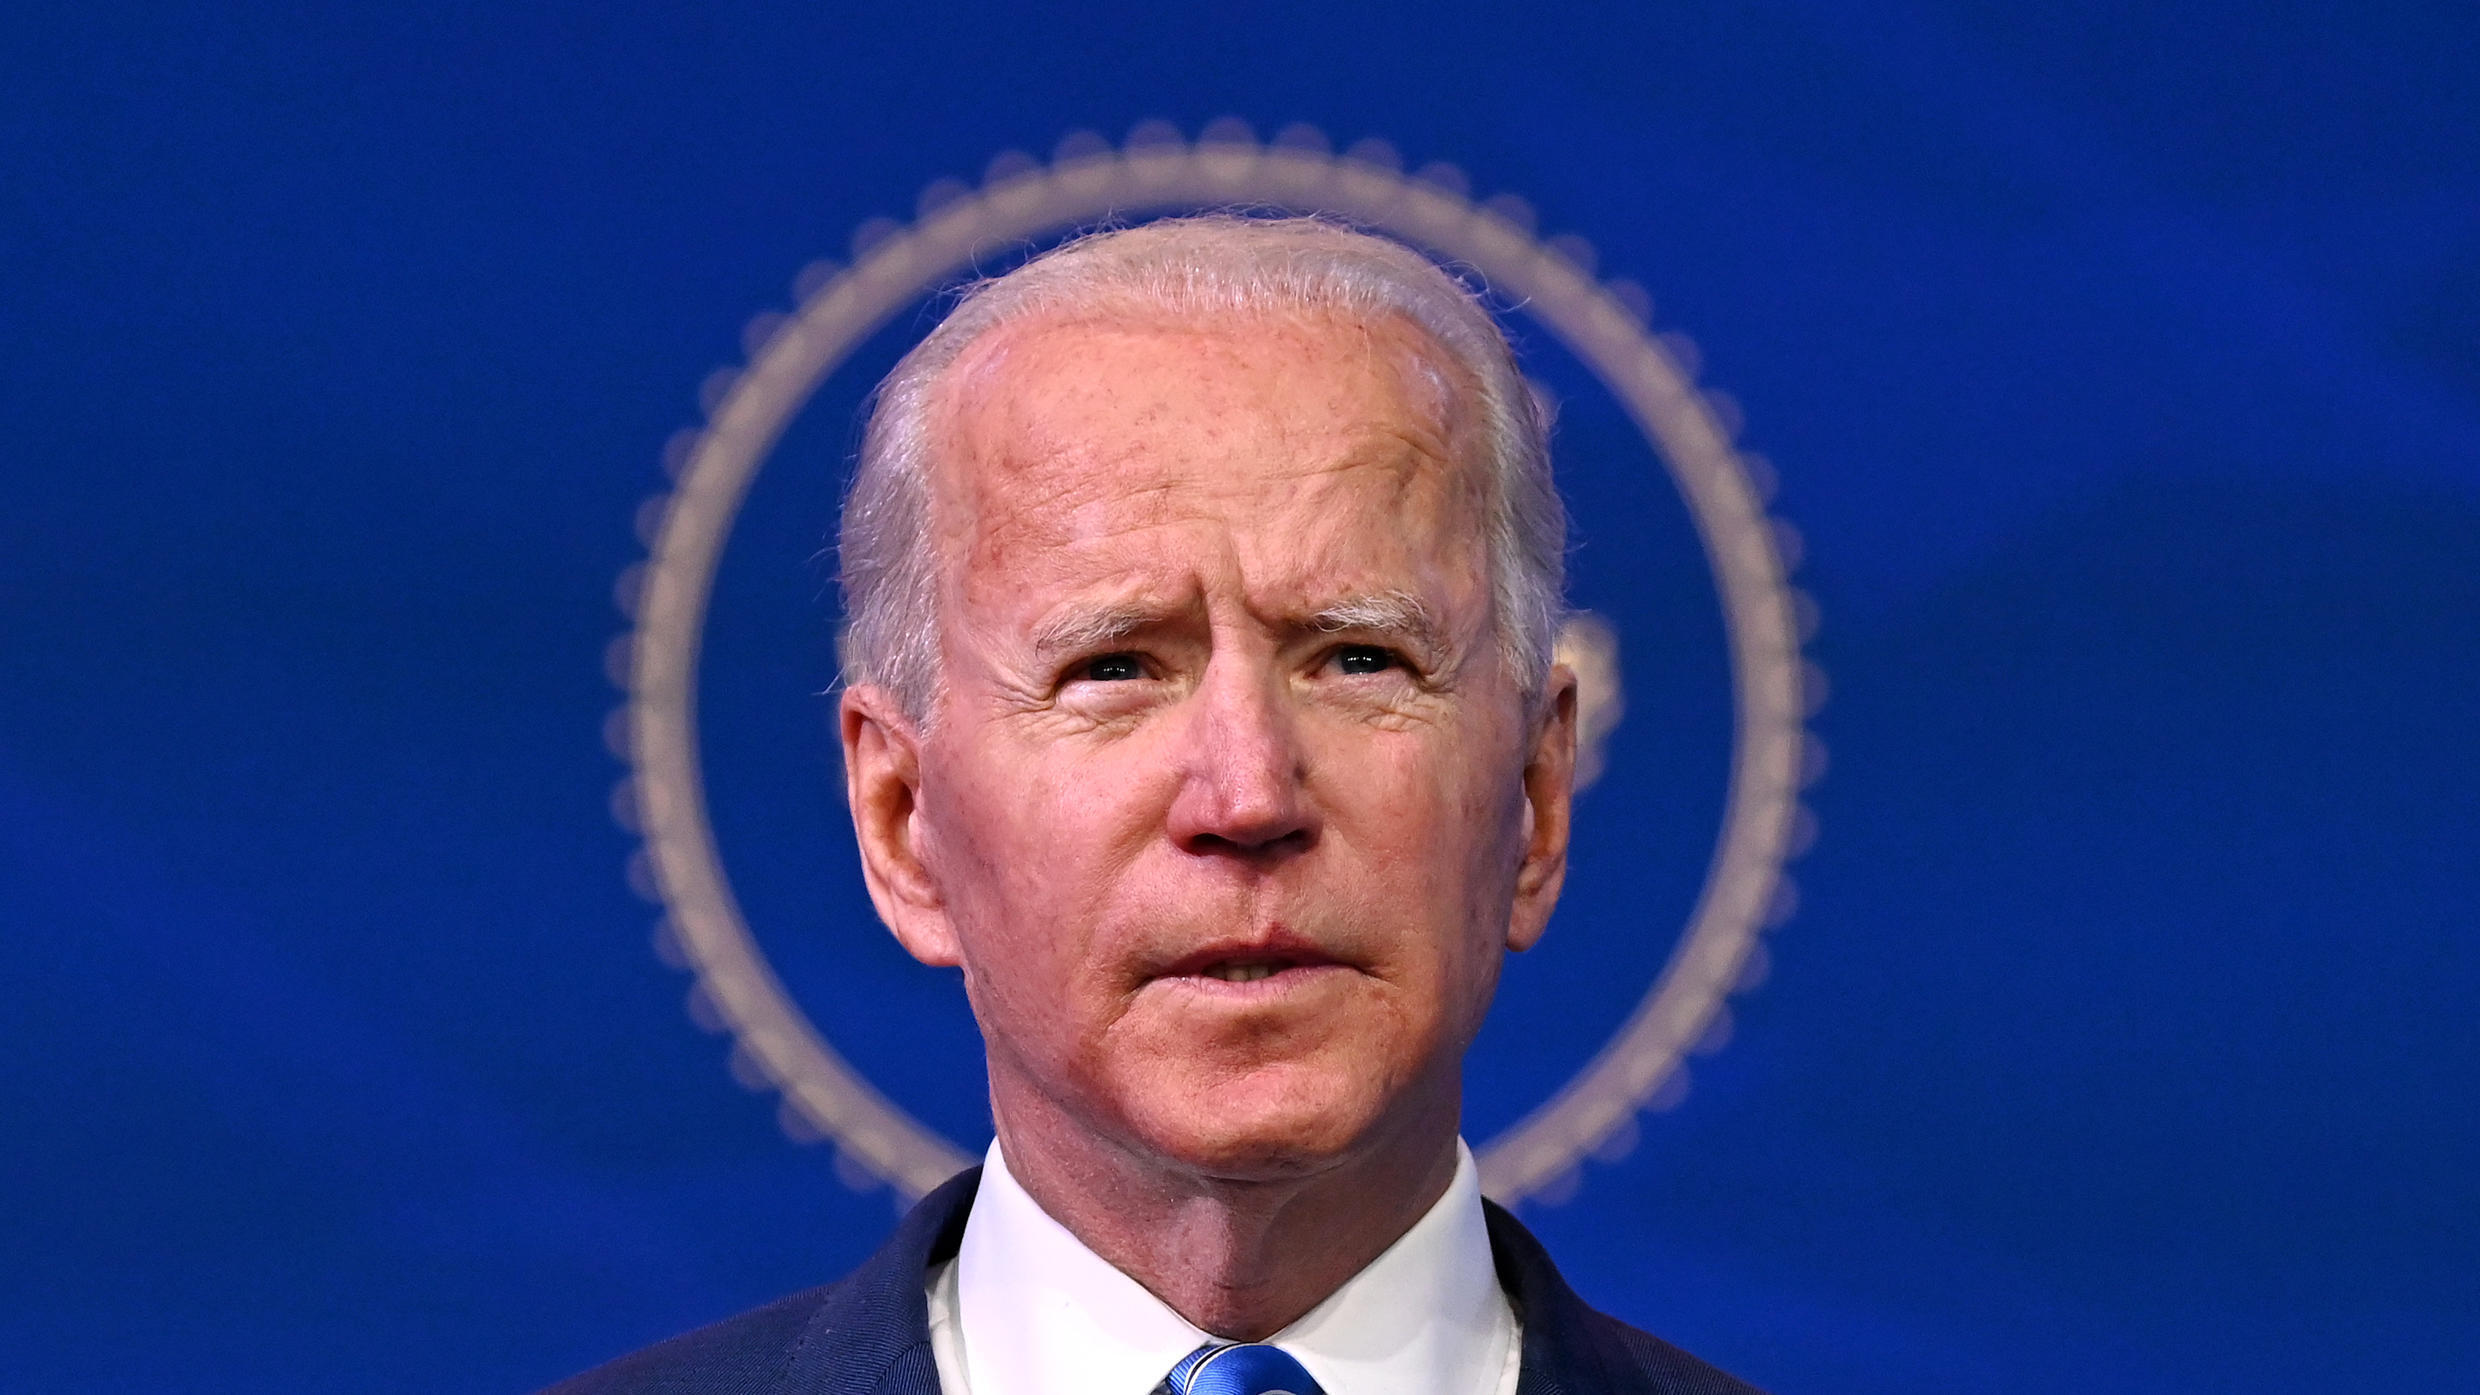 Joe Biden has already reversed his predecessor's decision to start withdrawing the US from the WHO